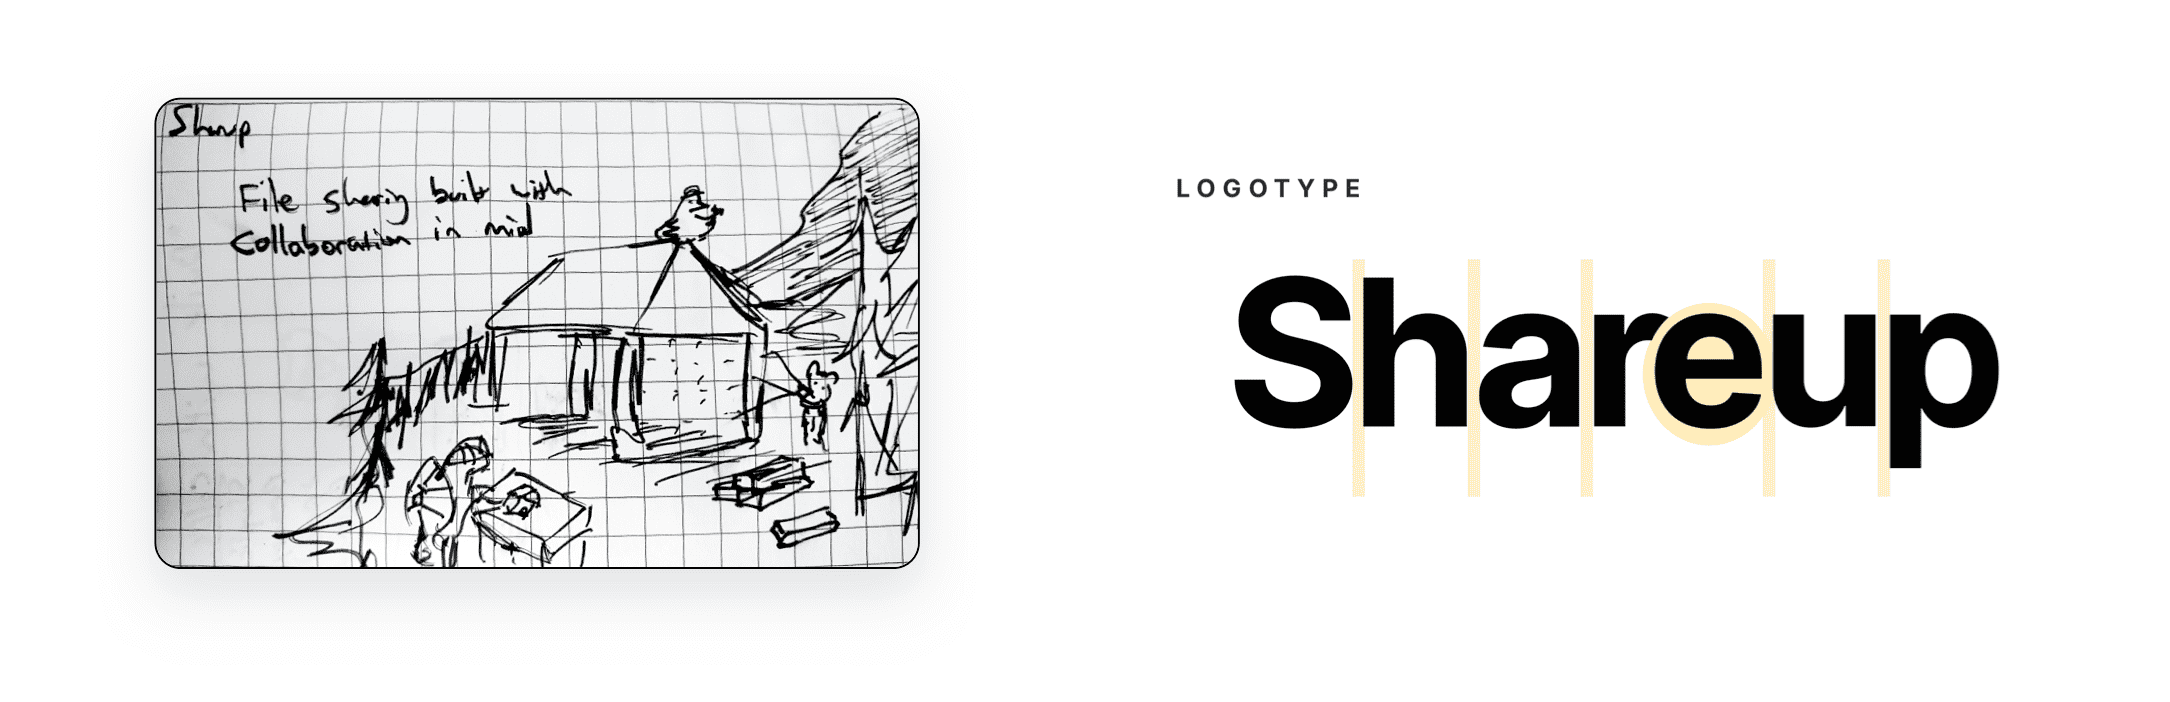 Image of a sketch of the homepage illustration and a spacing guide for the Shareup logotype